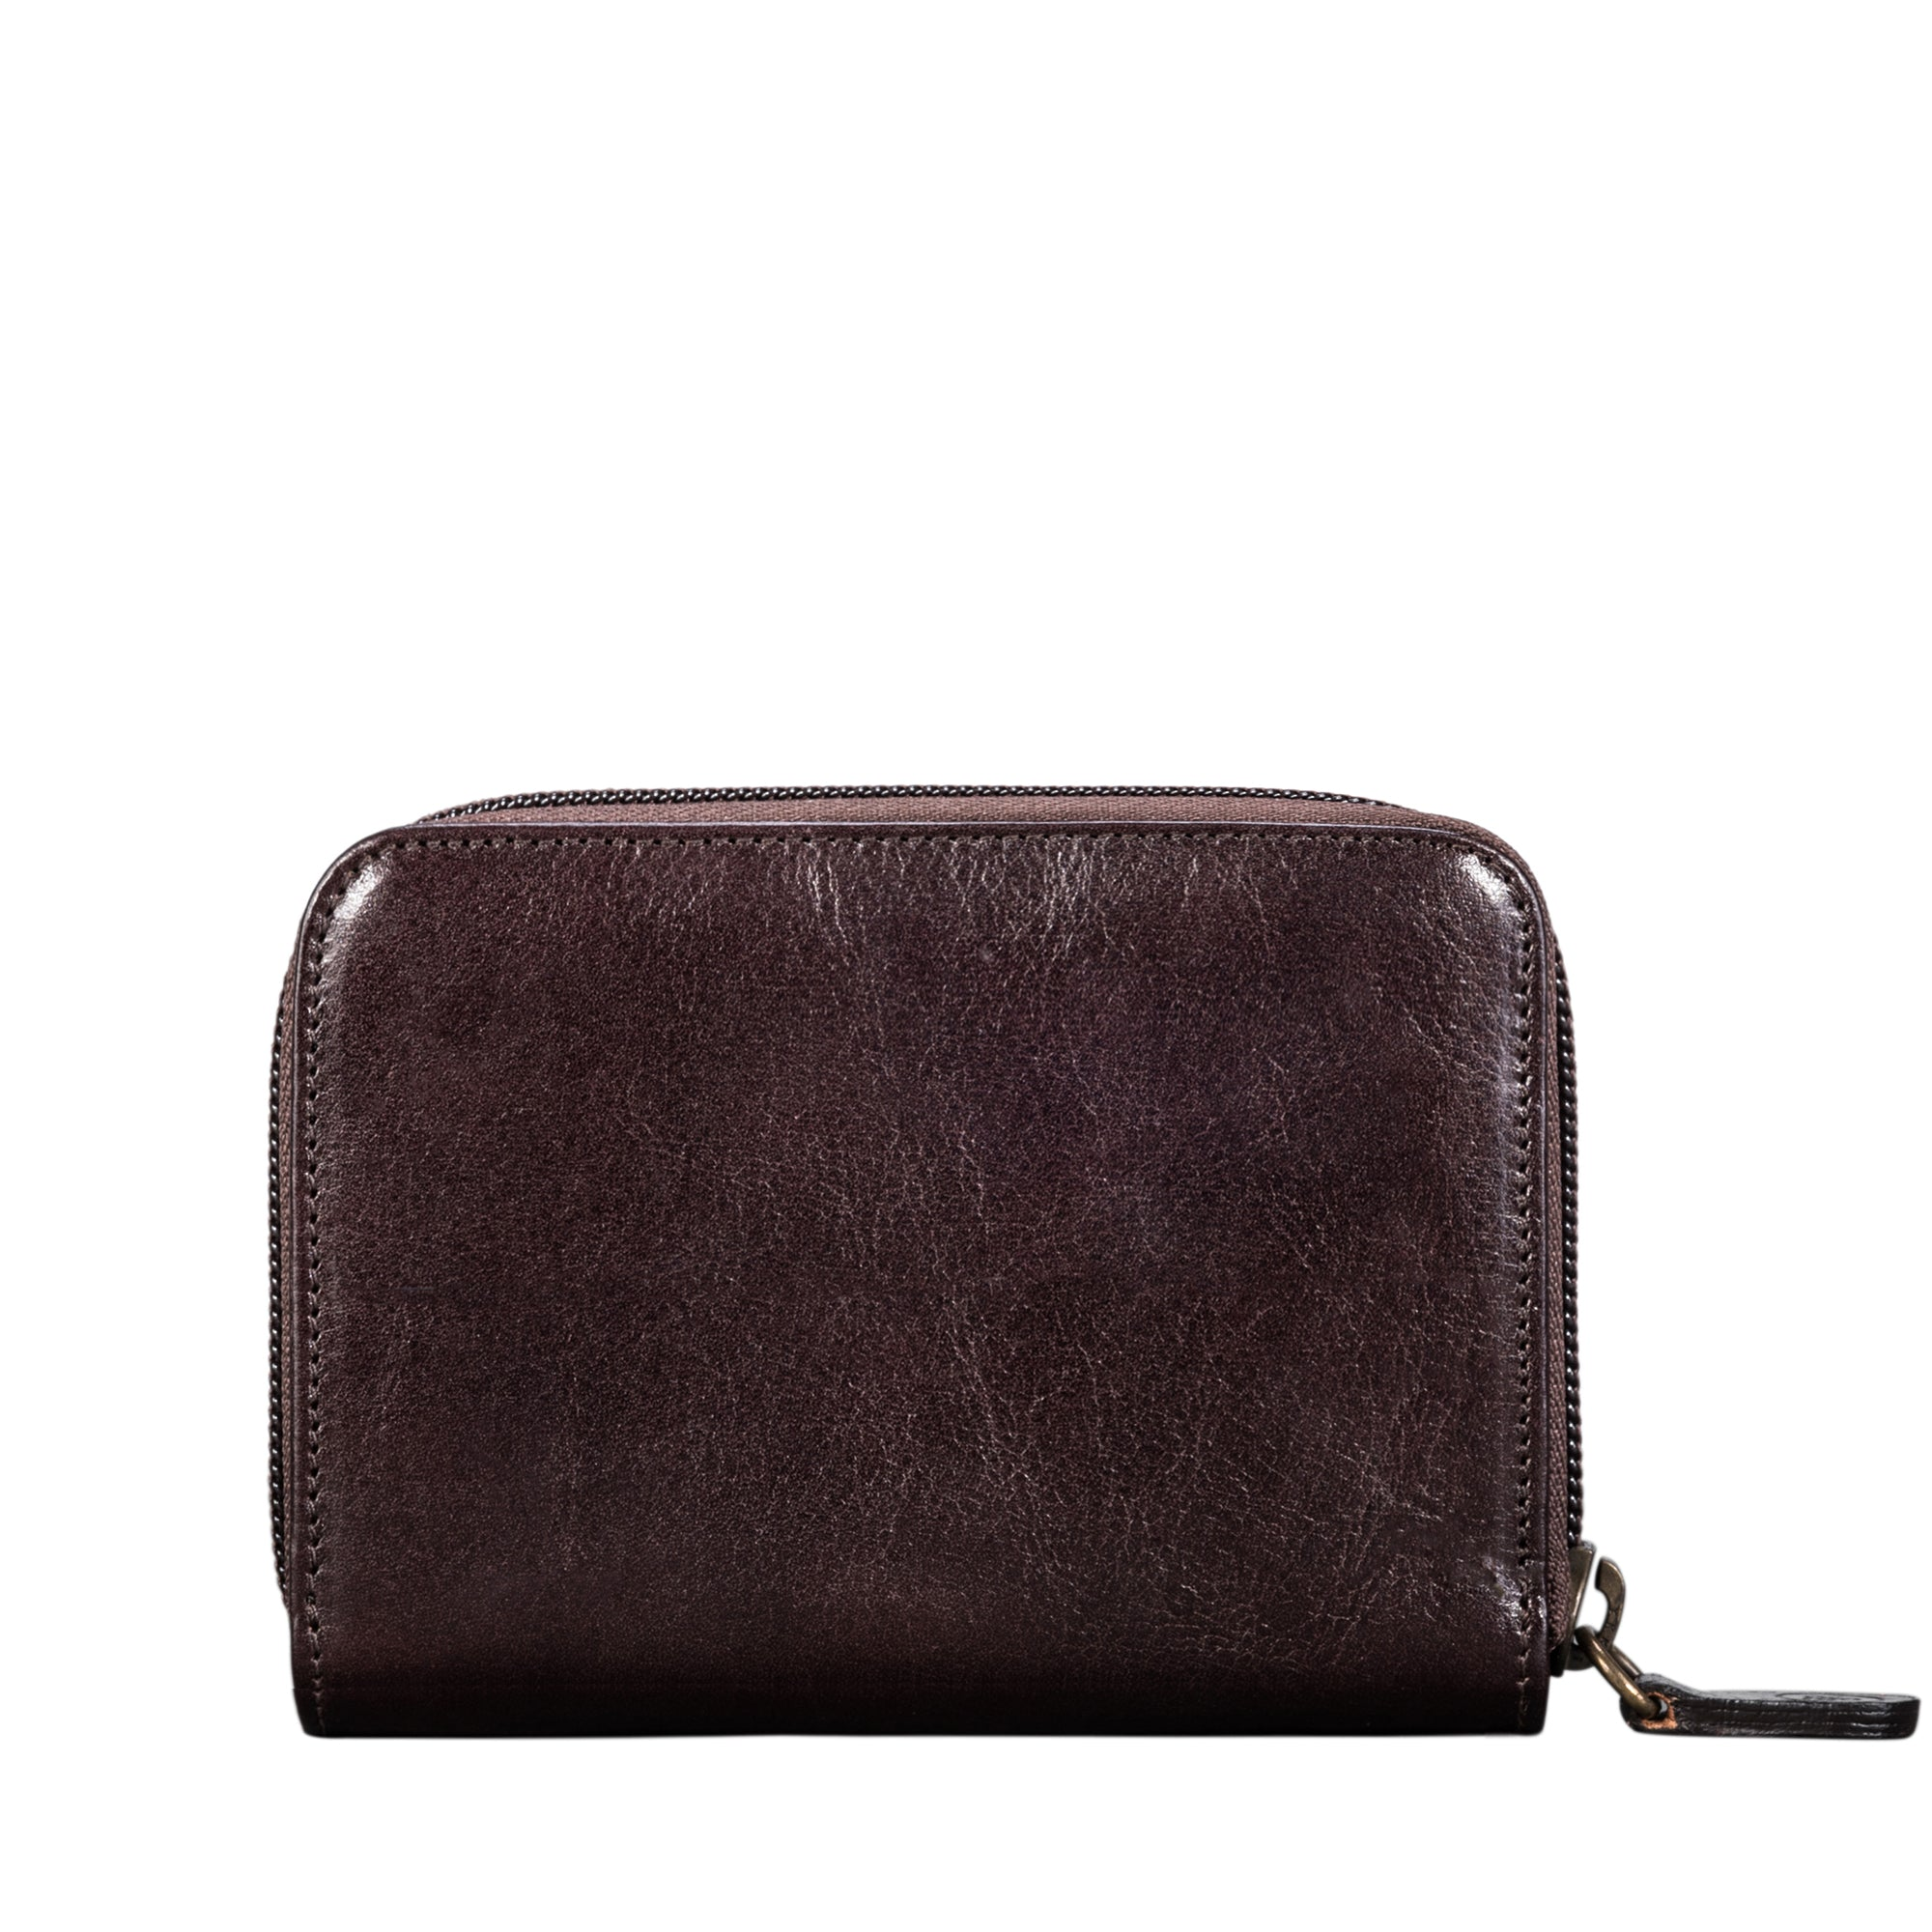 Image 2 of the 'Forino' Dark Chocolate Veg Tanned Leather Zip Purse